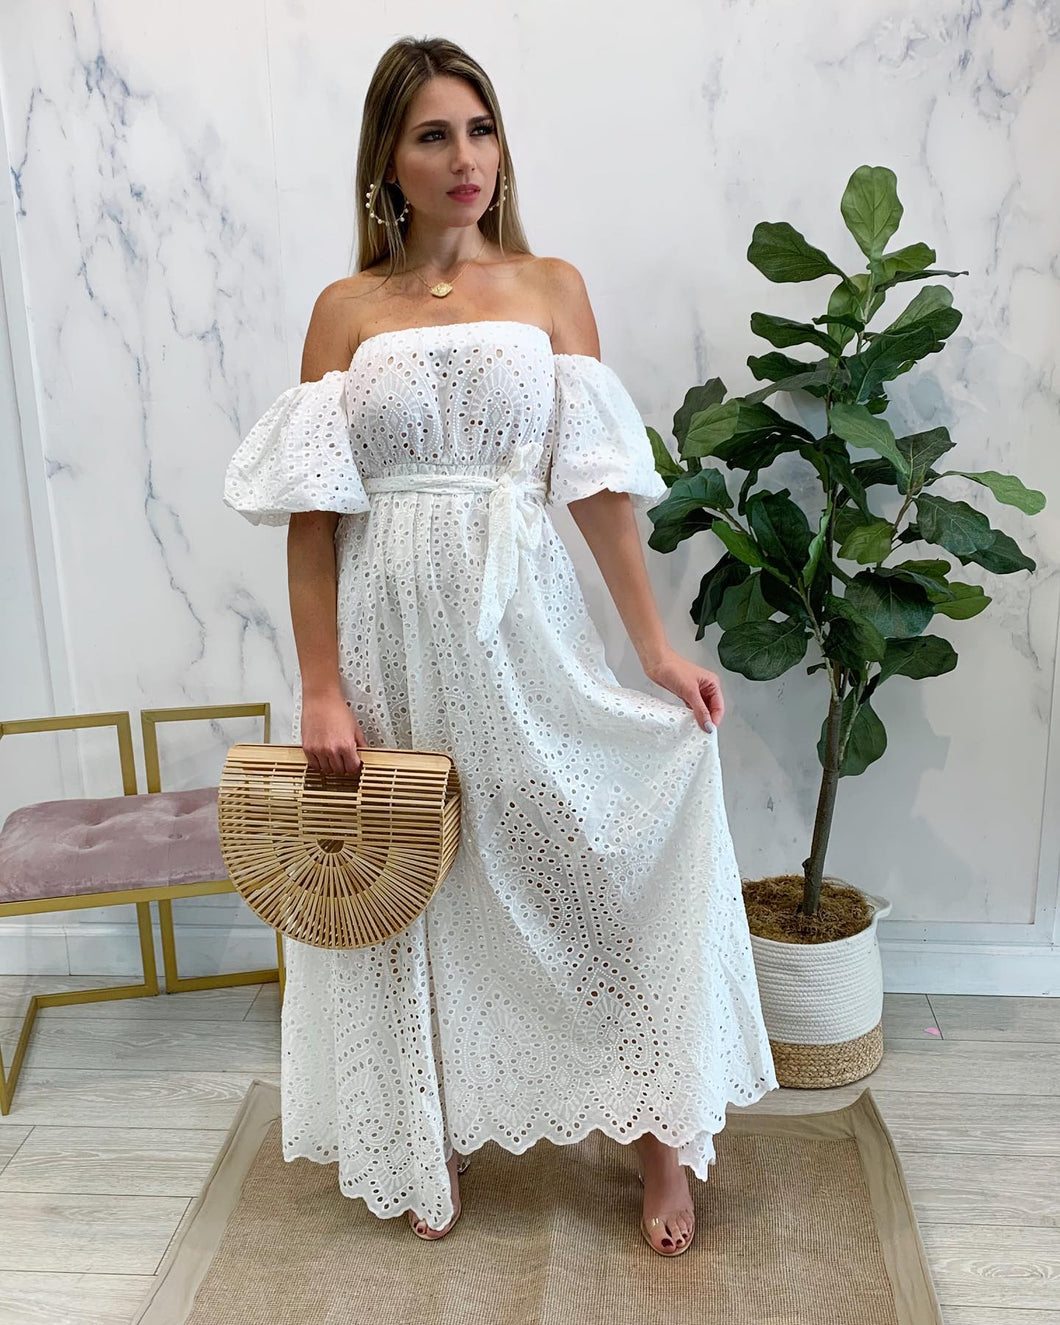 Thalassa Eyelet Dress